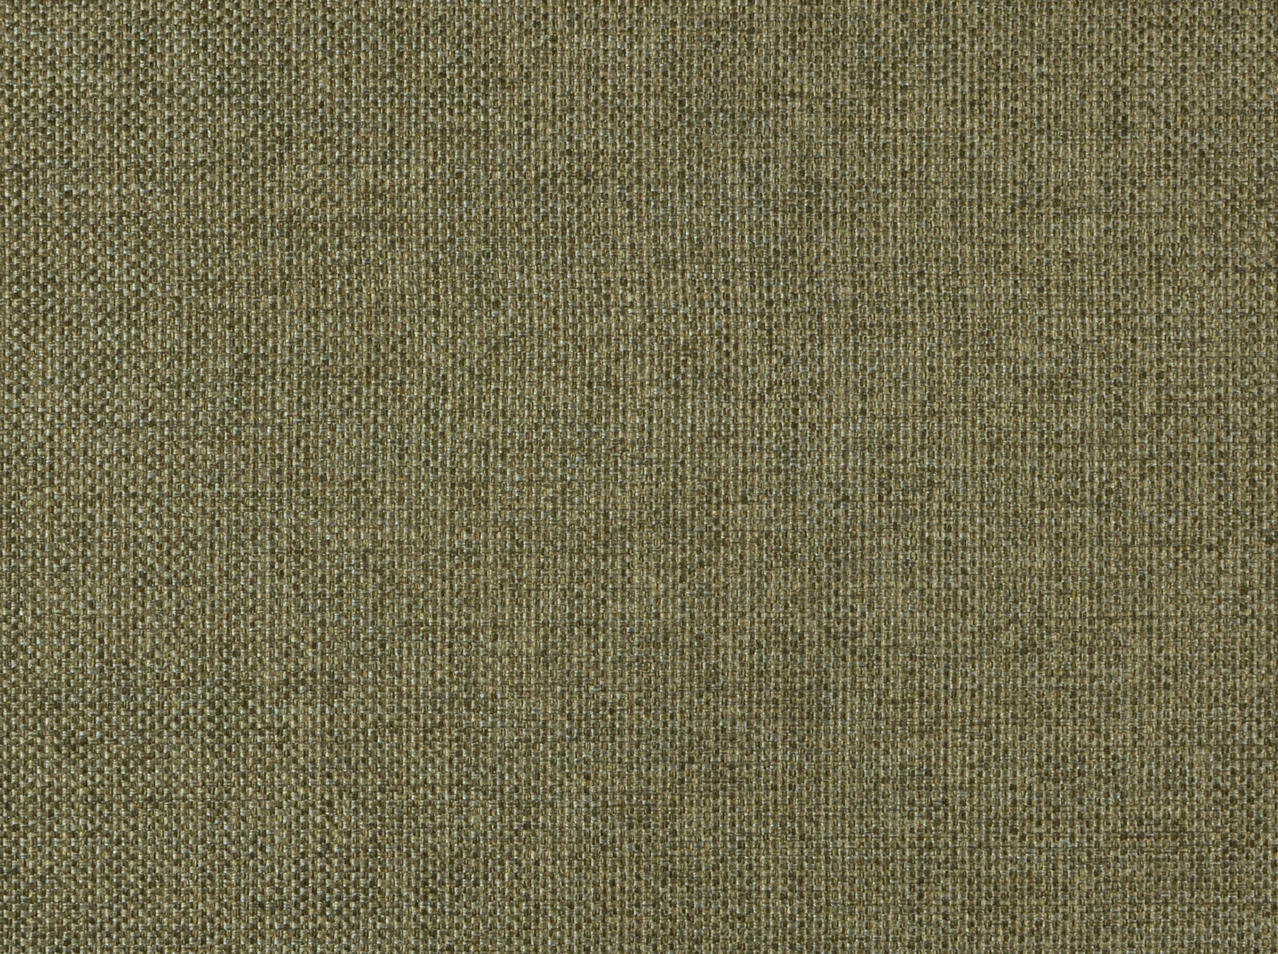 Covington Solids%20and%20Textures Digger